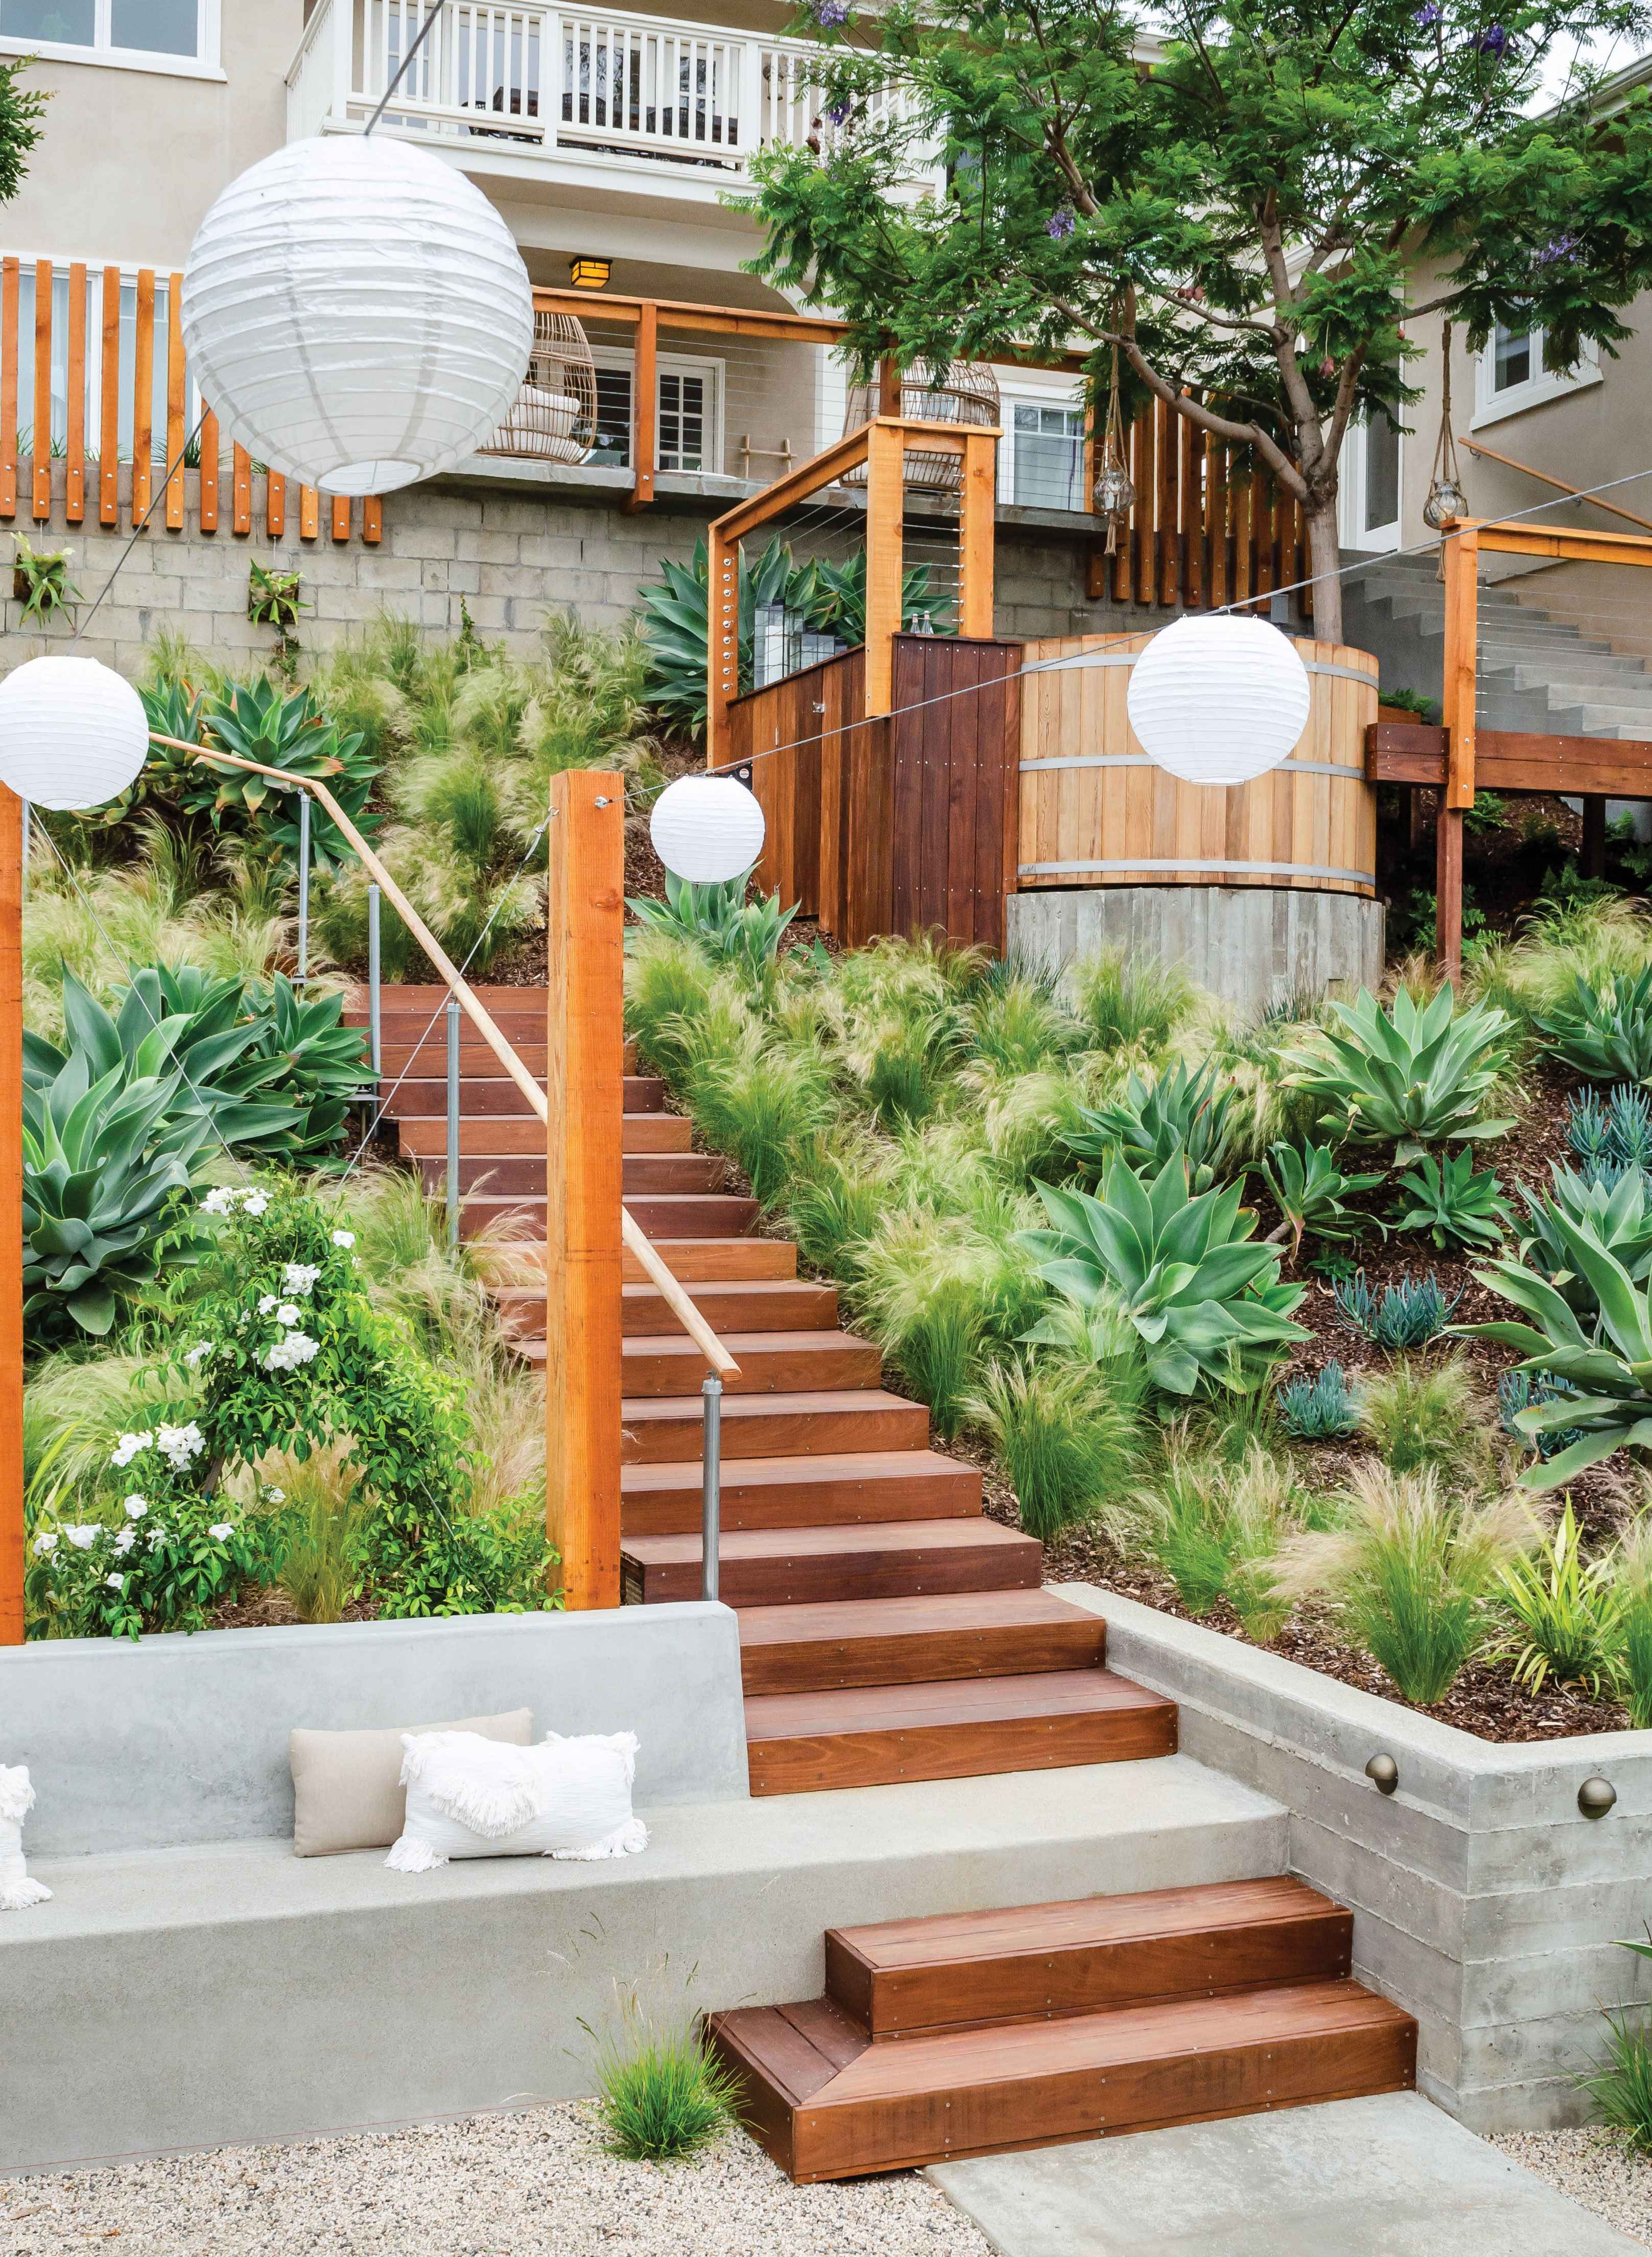 tiered garden tiers ipe staircase stairs terraced terraces